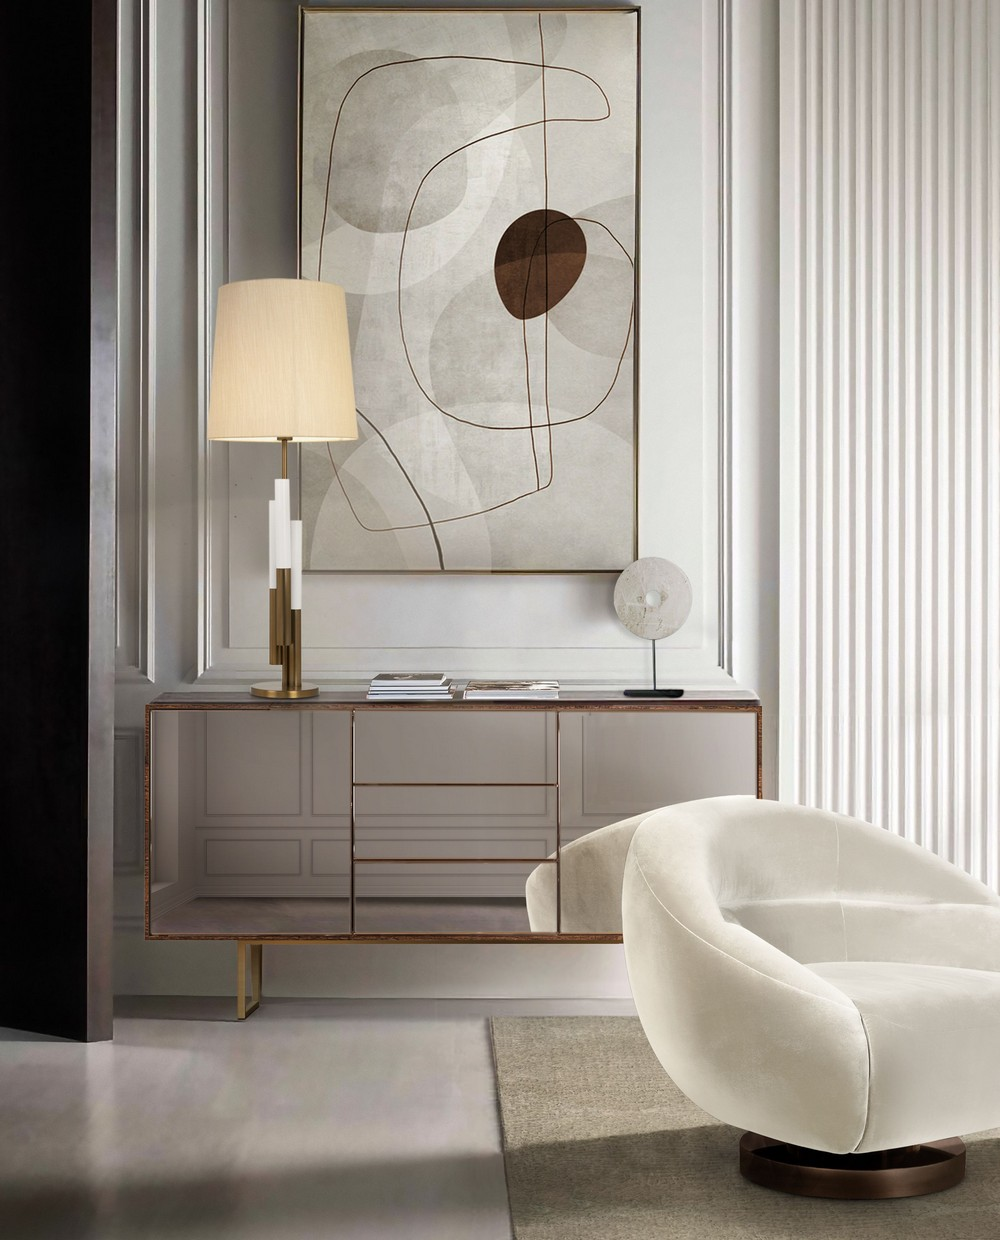 Design Inspiration: 7 Sideboards For 7 Styles sideboards Design Inspiration: 7 Sideboards For 7 Styles design inspiration sideboards for styles 5